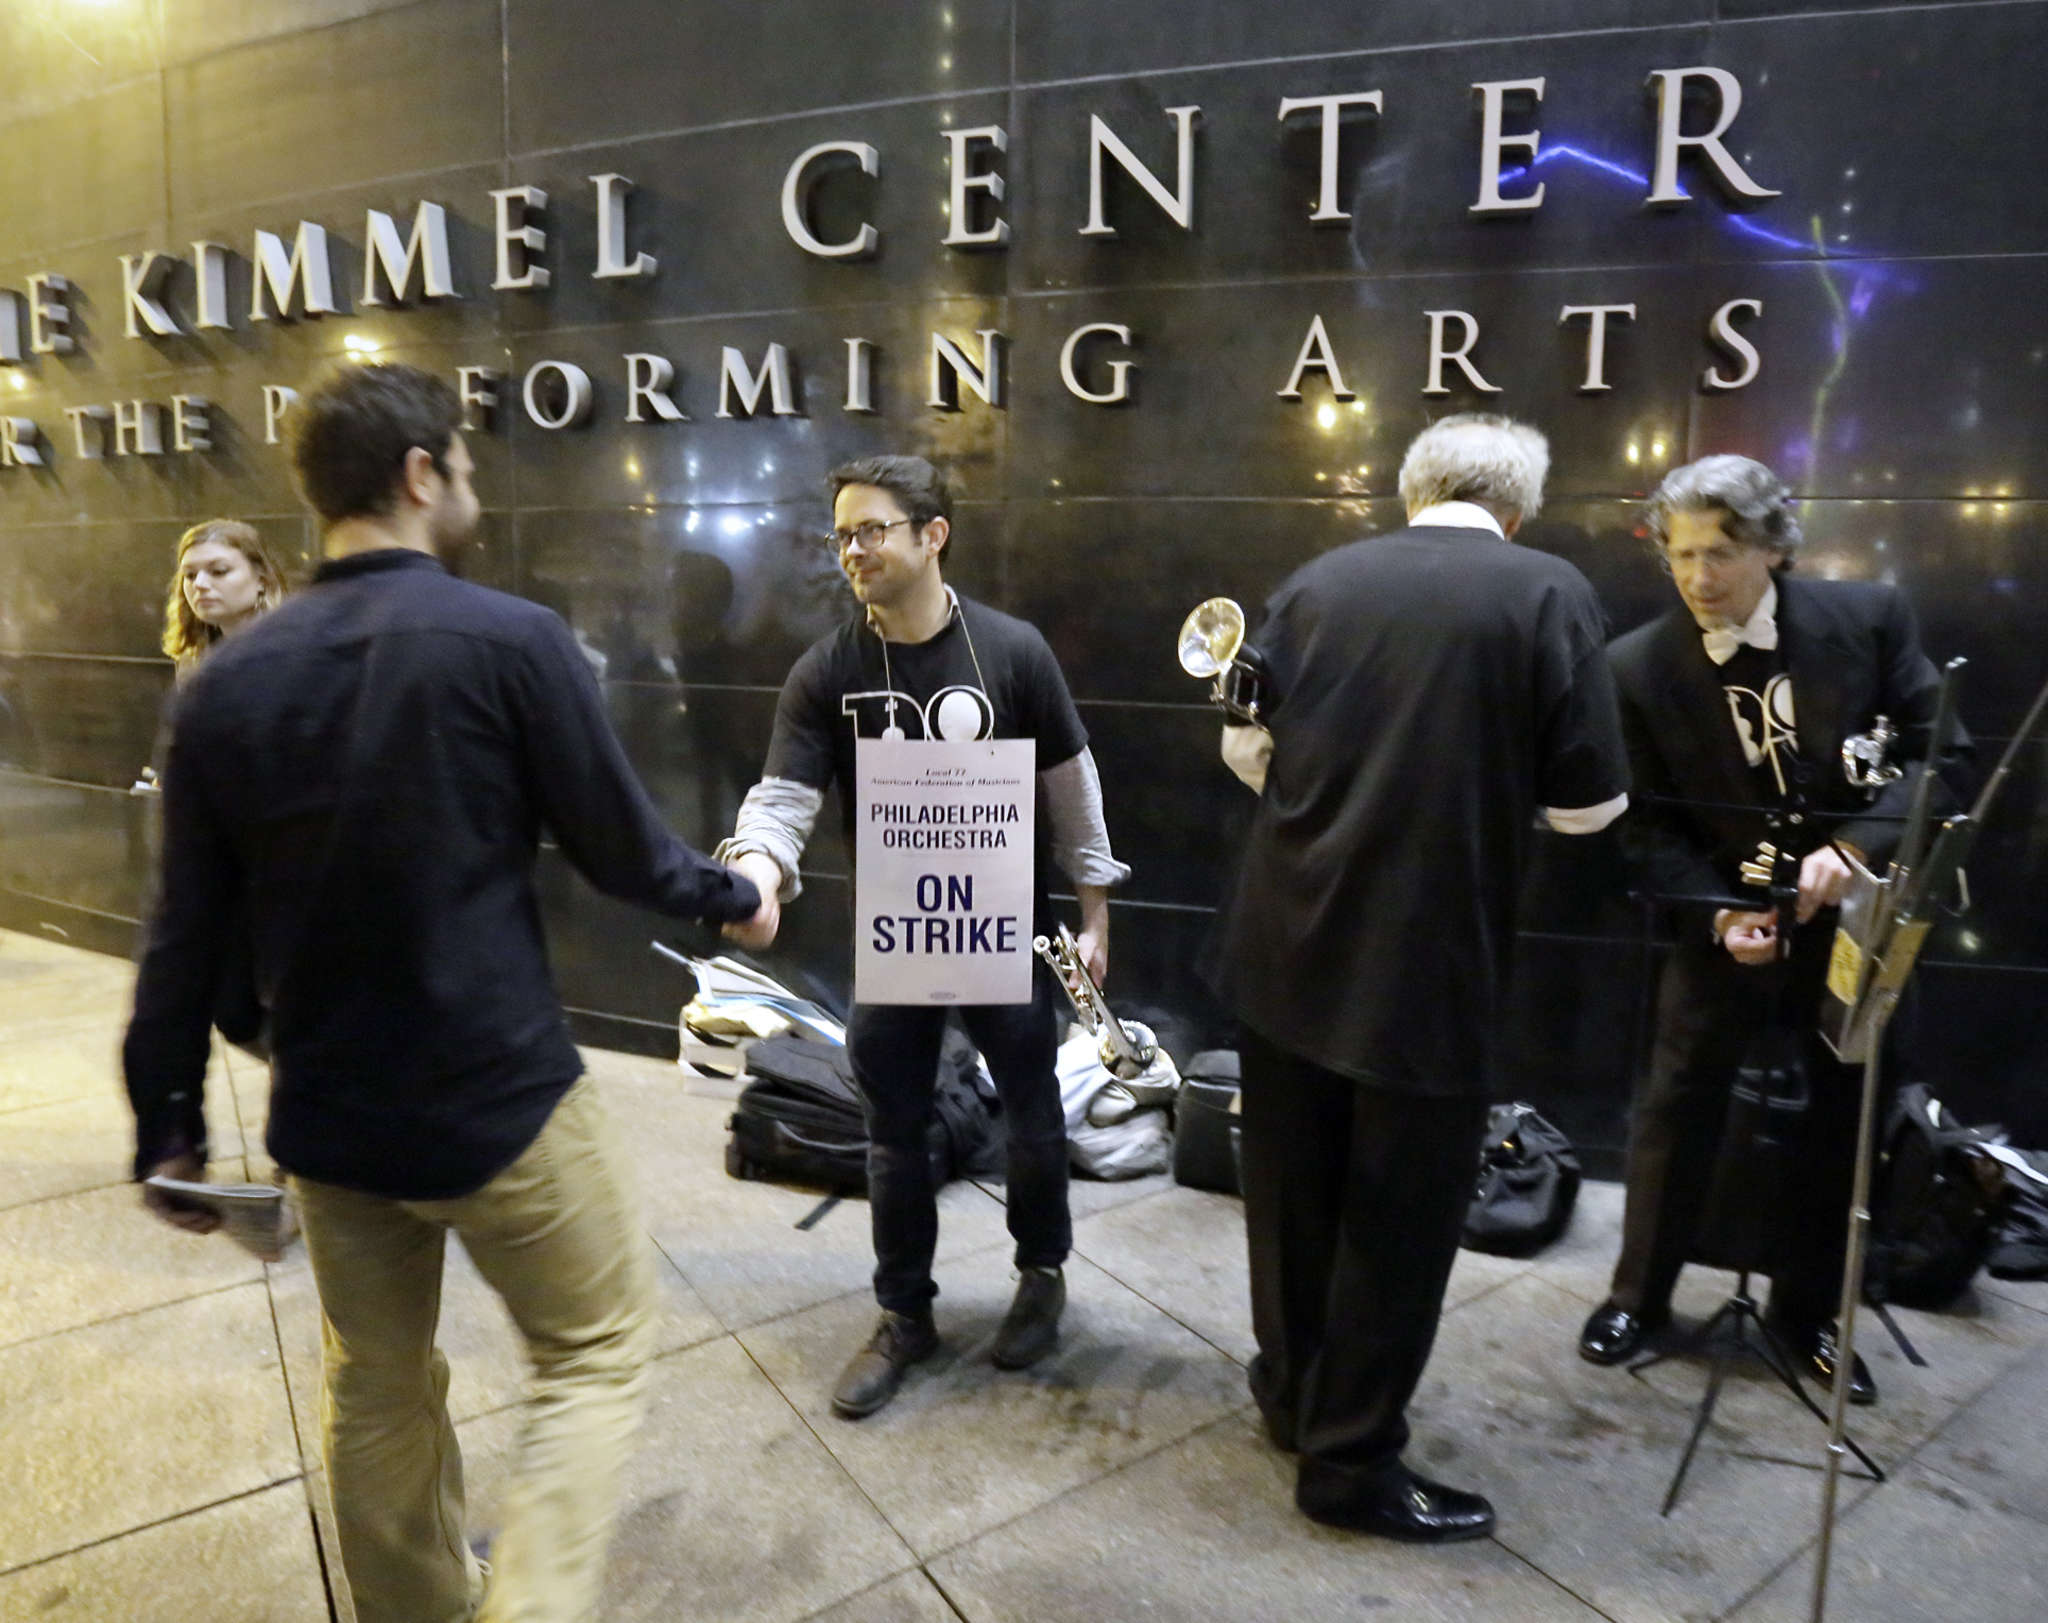 Philadelphia Orchestra members are thanked after playing briefly outside the Kimmel Center while others walked the picket line Friday evening.